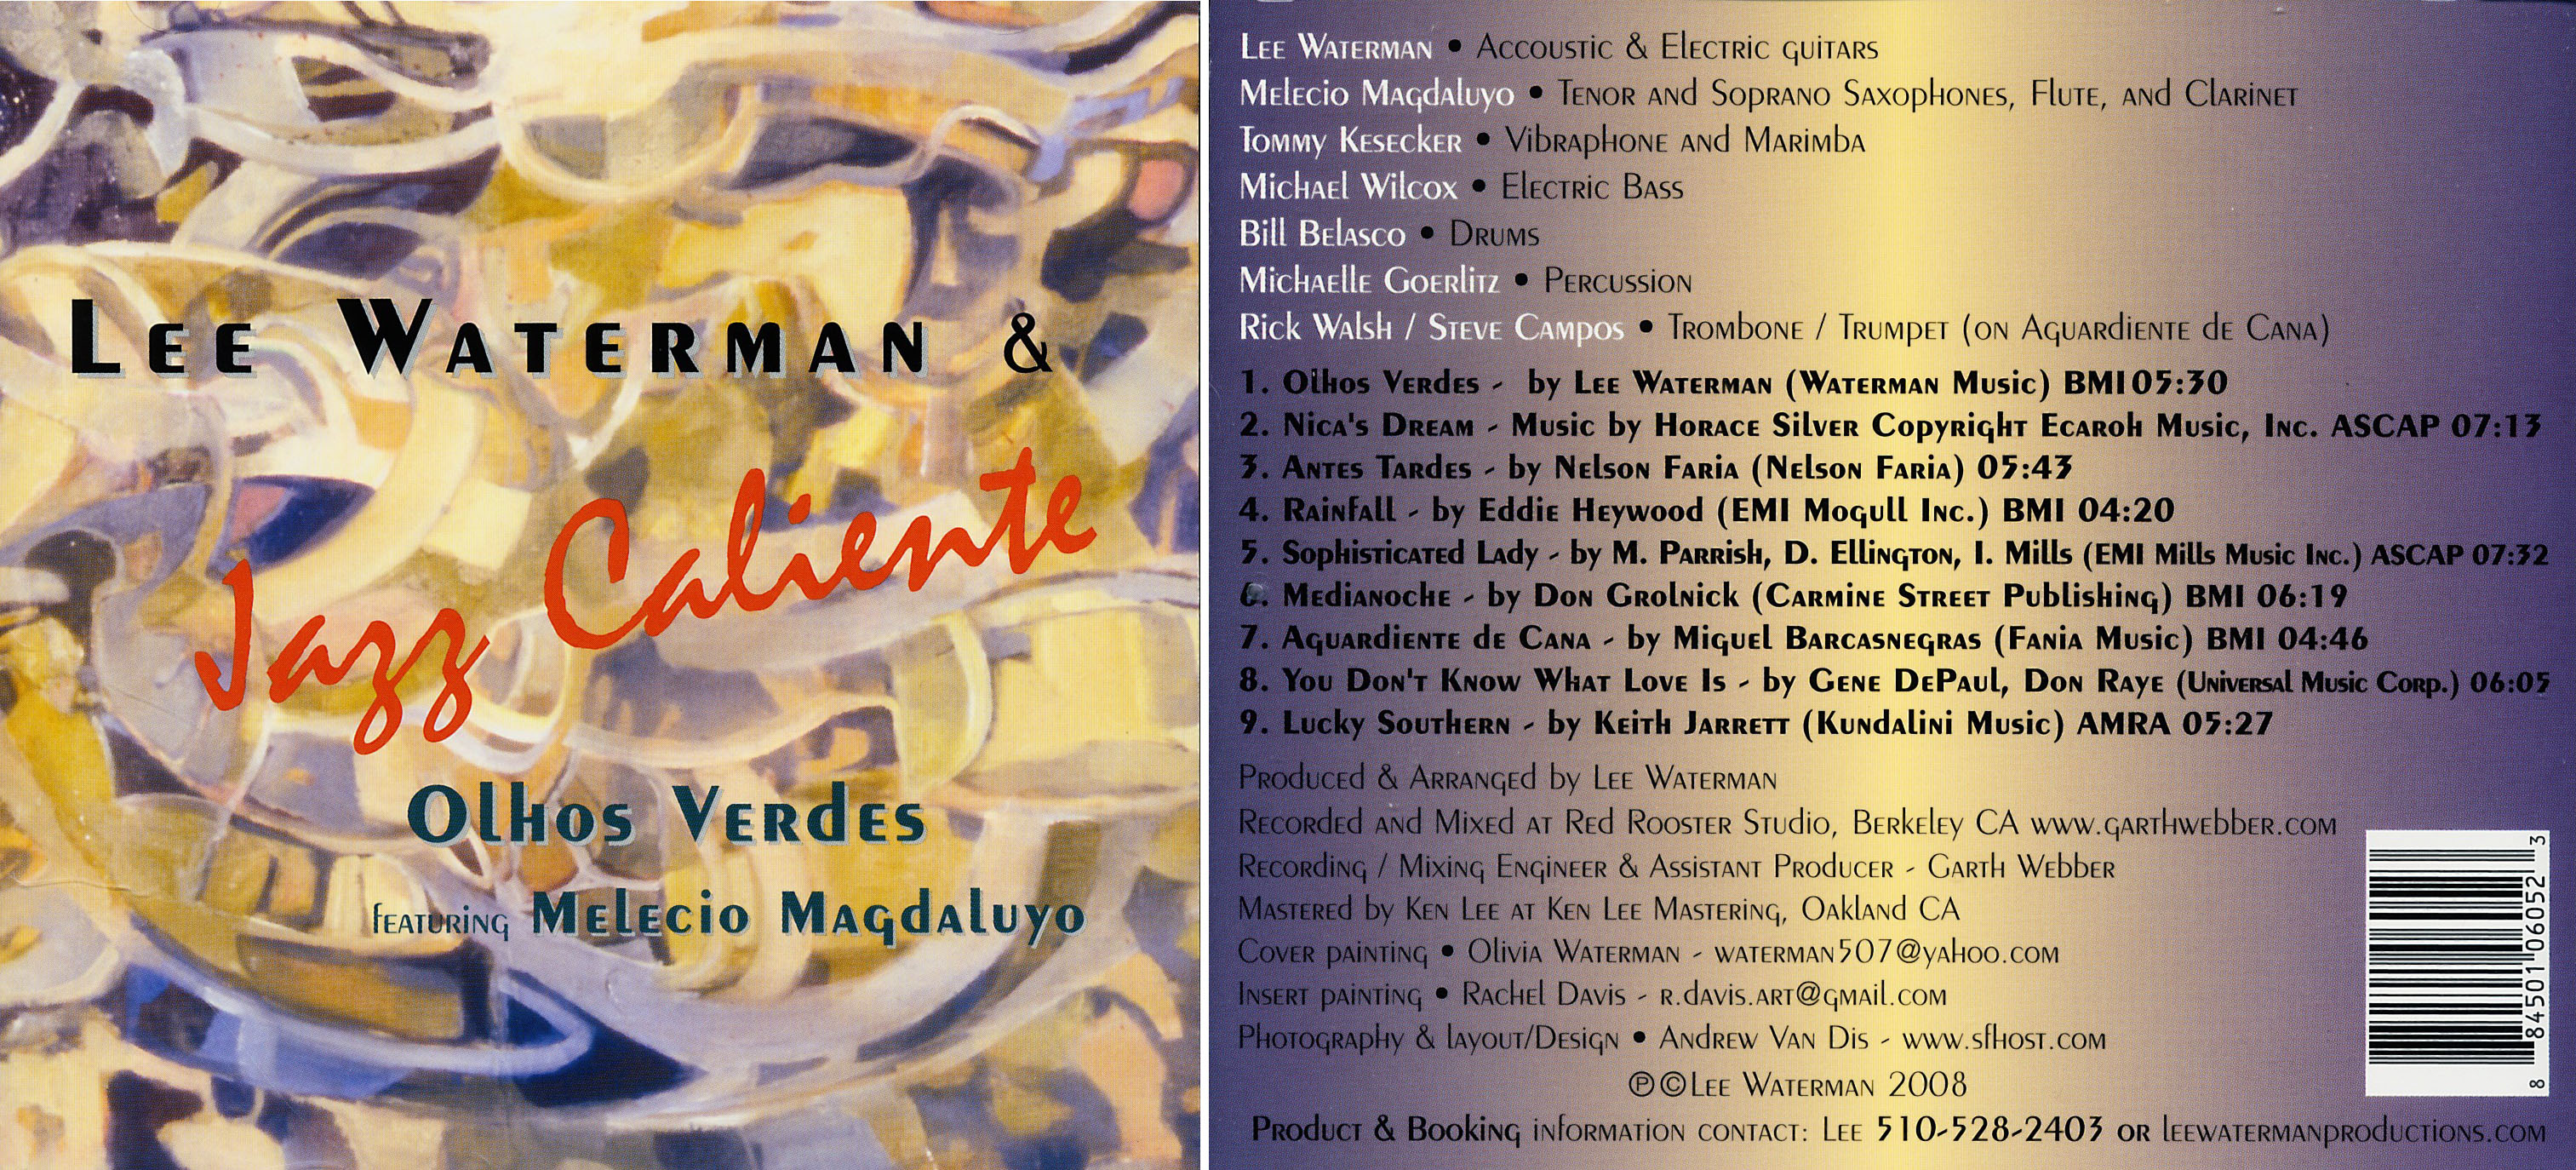 Lee Waterman's Jazz Caliente | Olhos Verdes